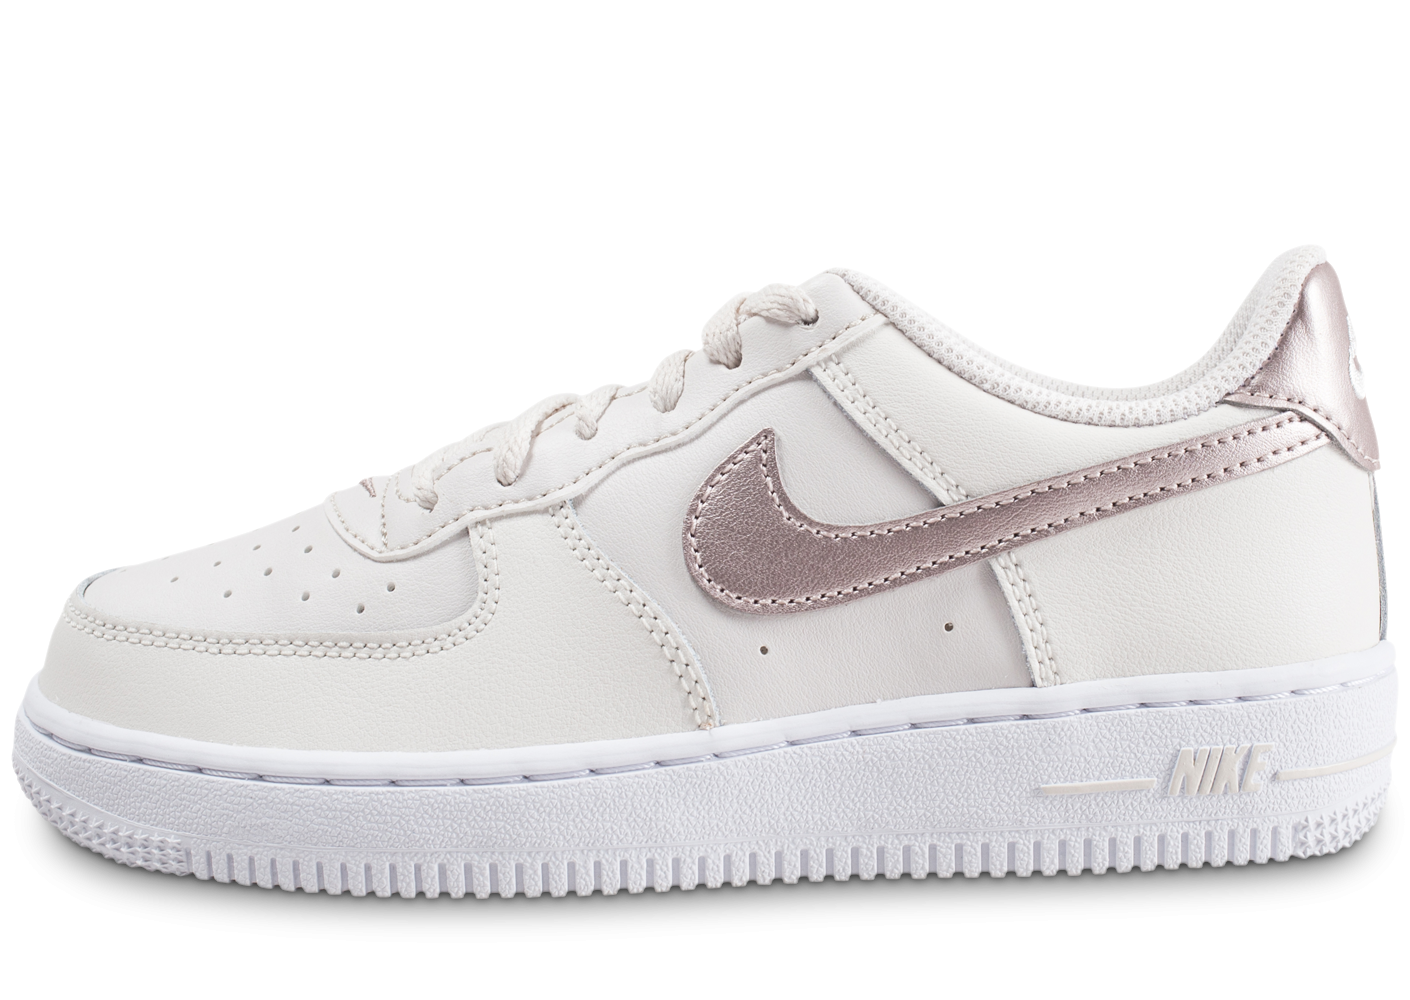 Nike Air Force 1 Low blanc or rose enfant